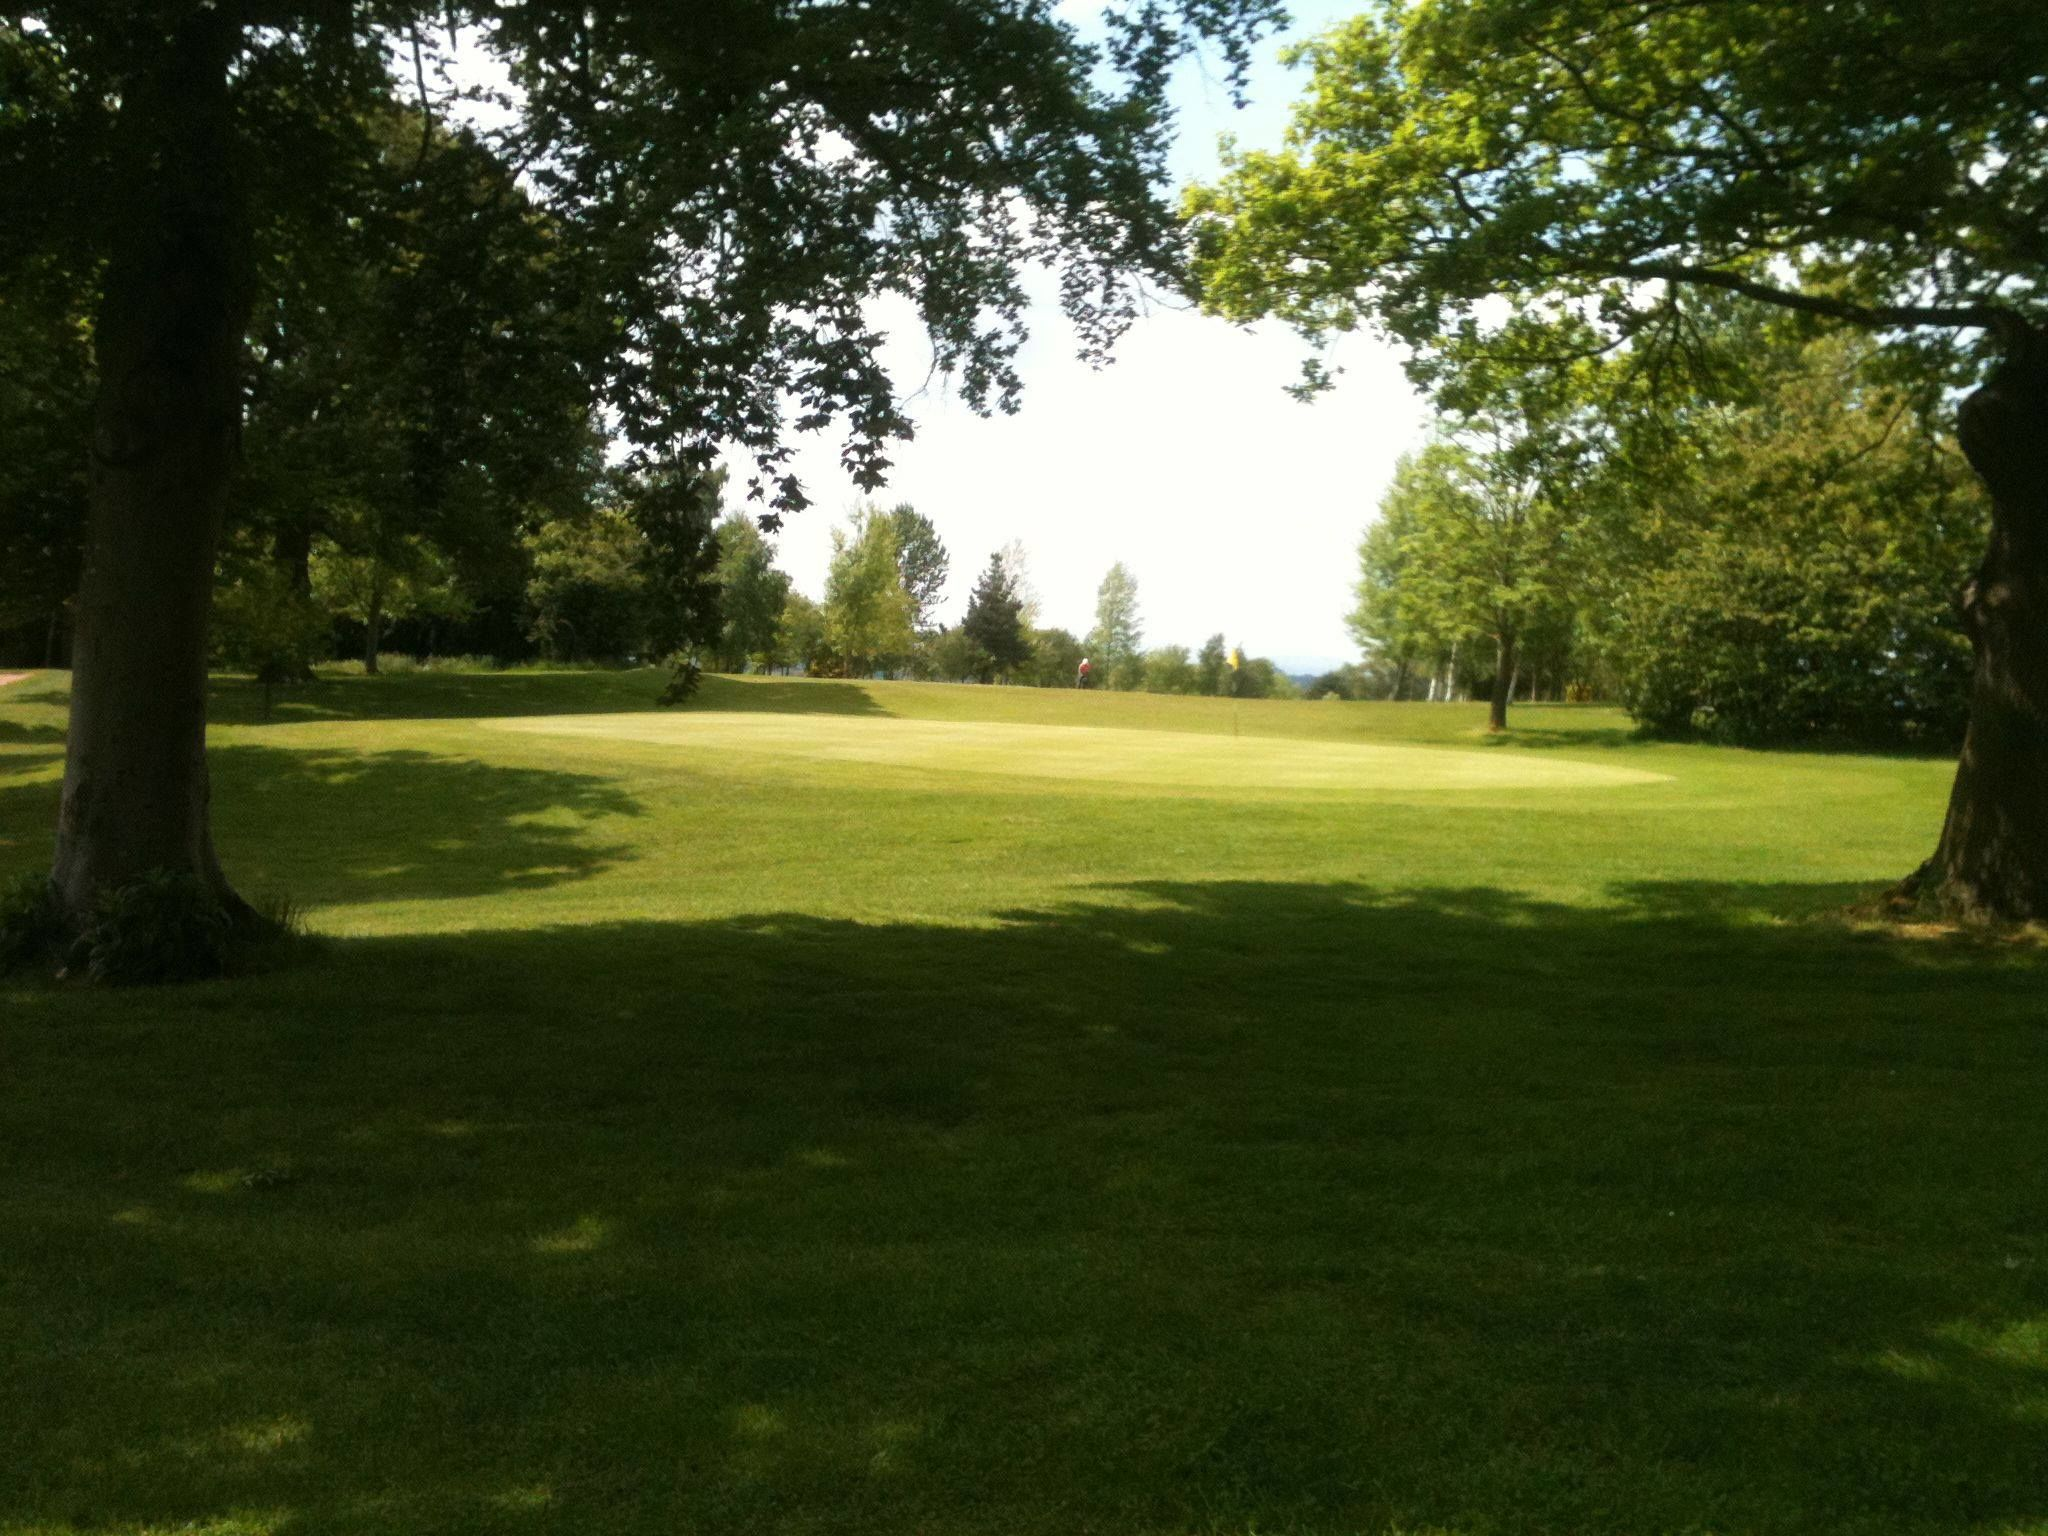 Arscott golf club cover picture